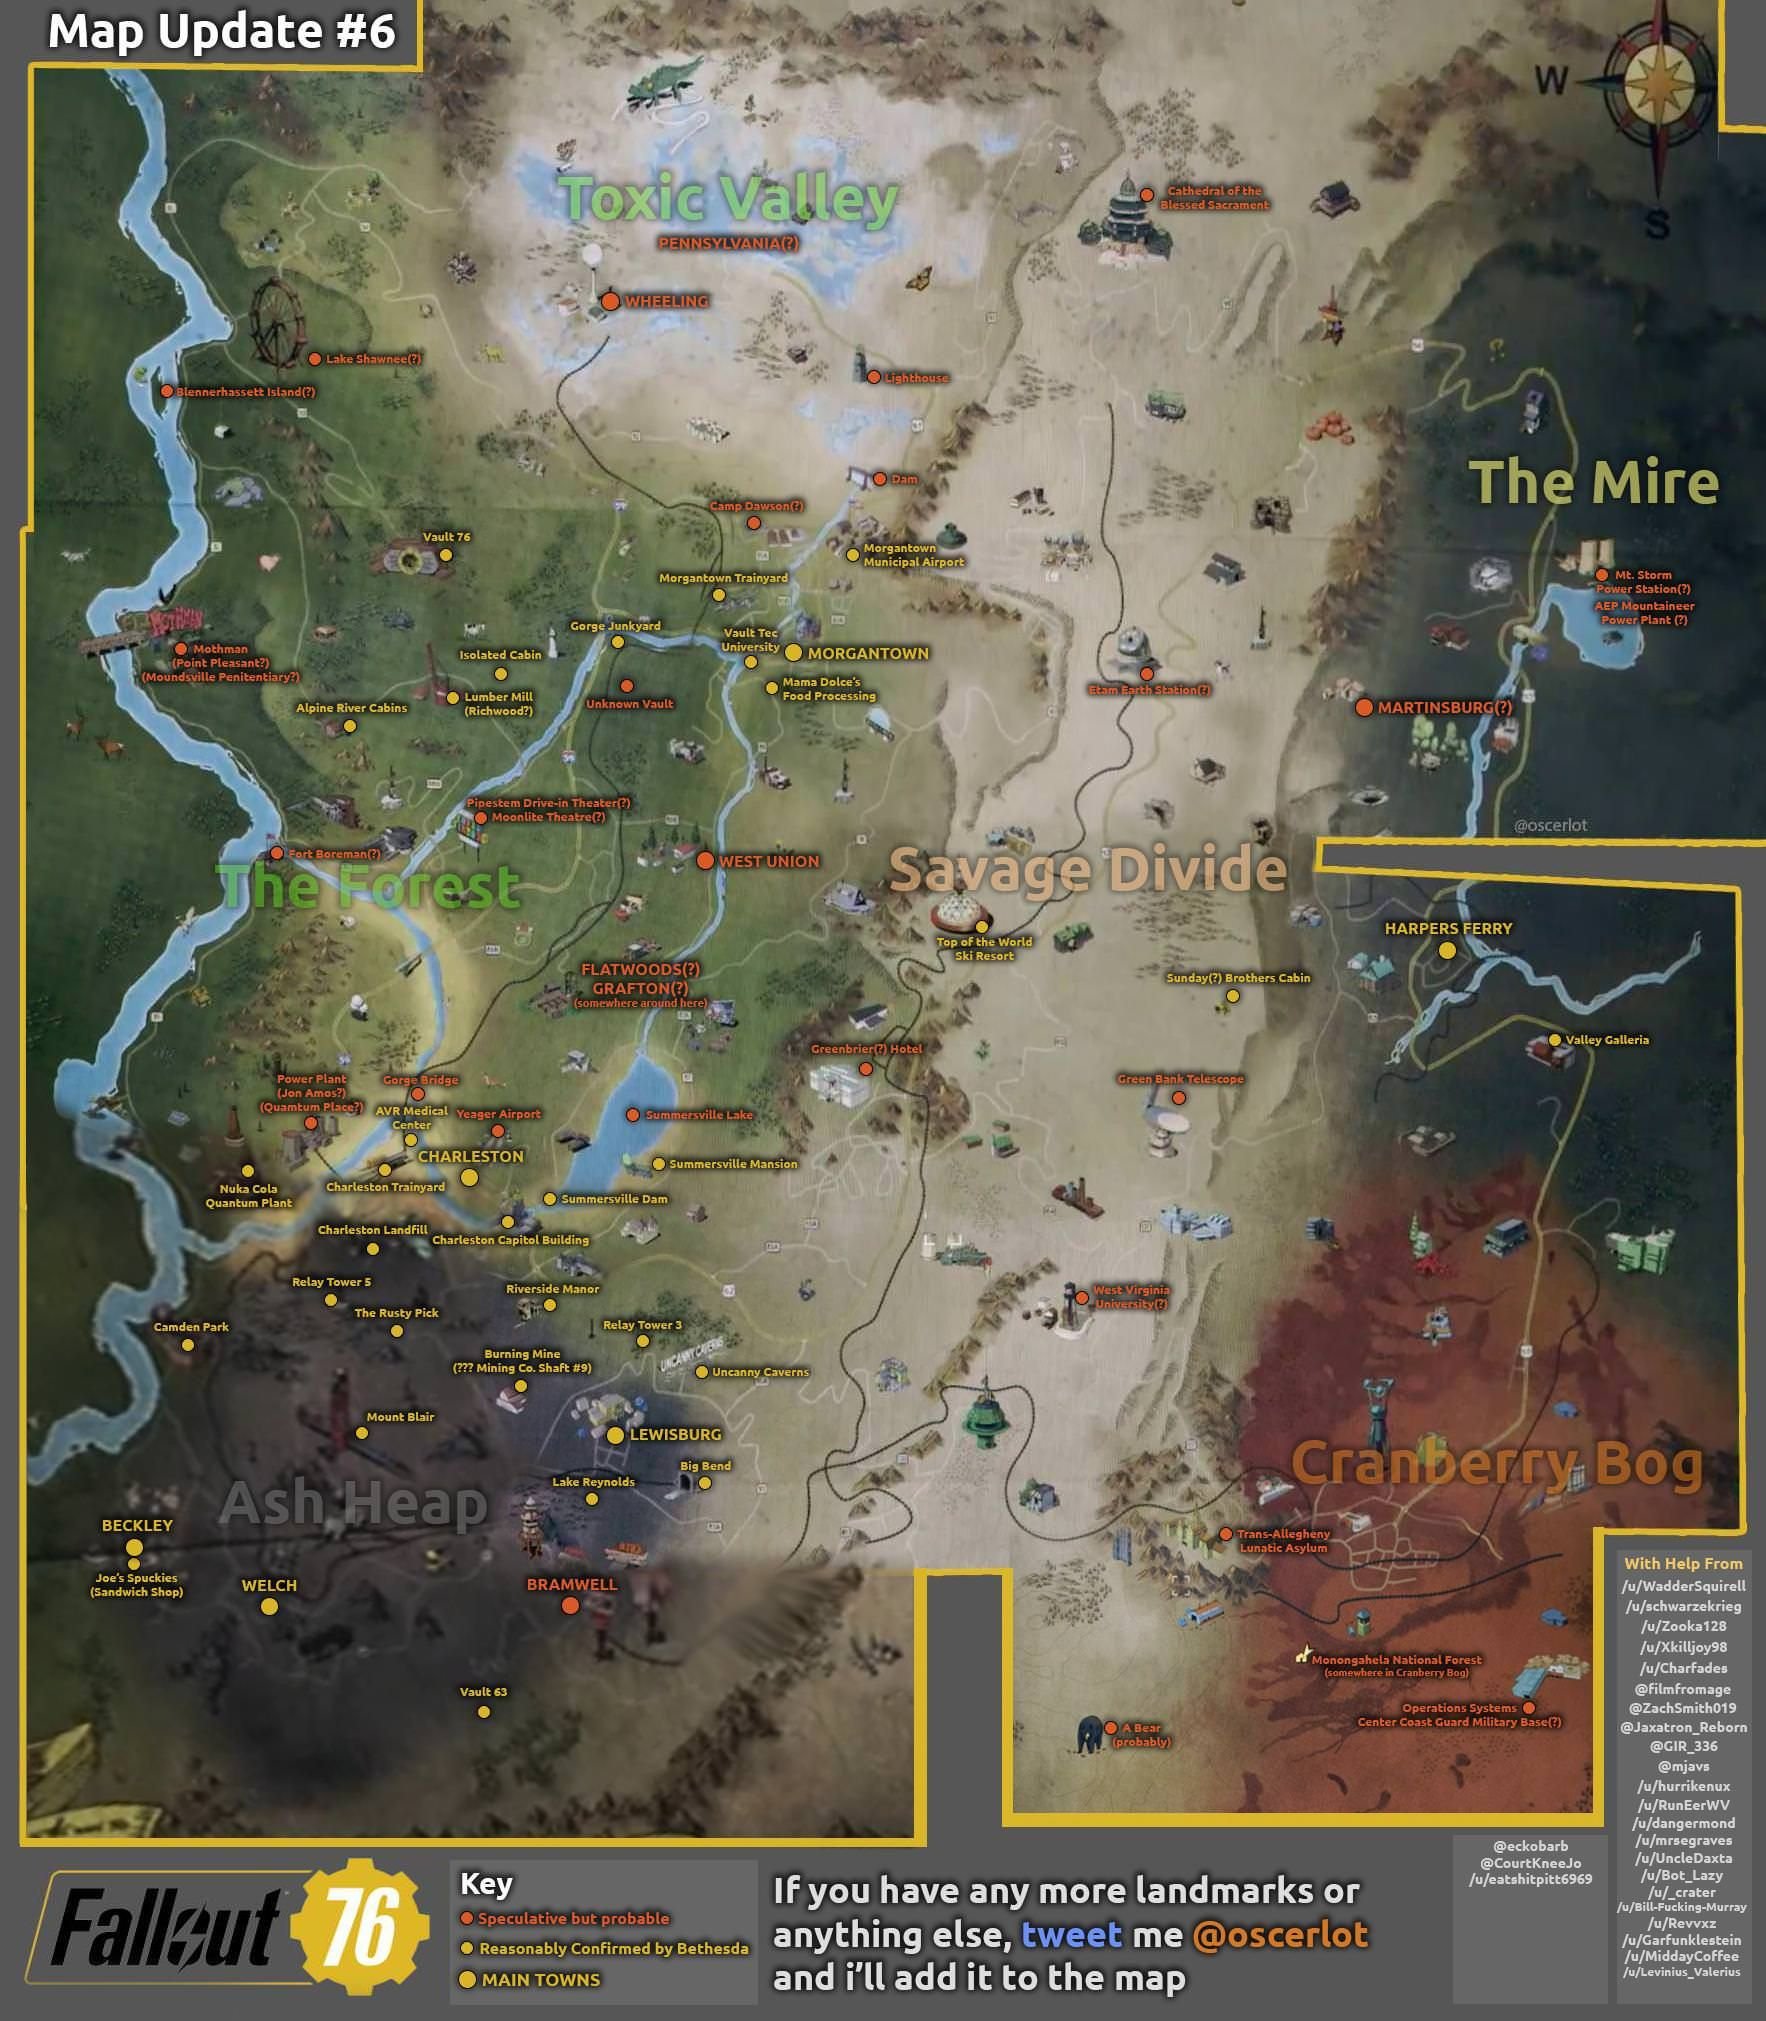 Fallout fans are building their own Fallout 76 map using scattered ...